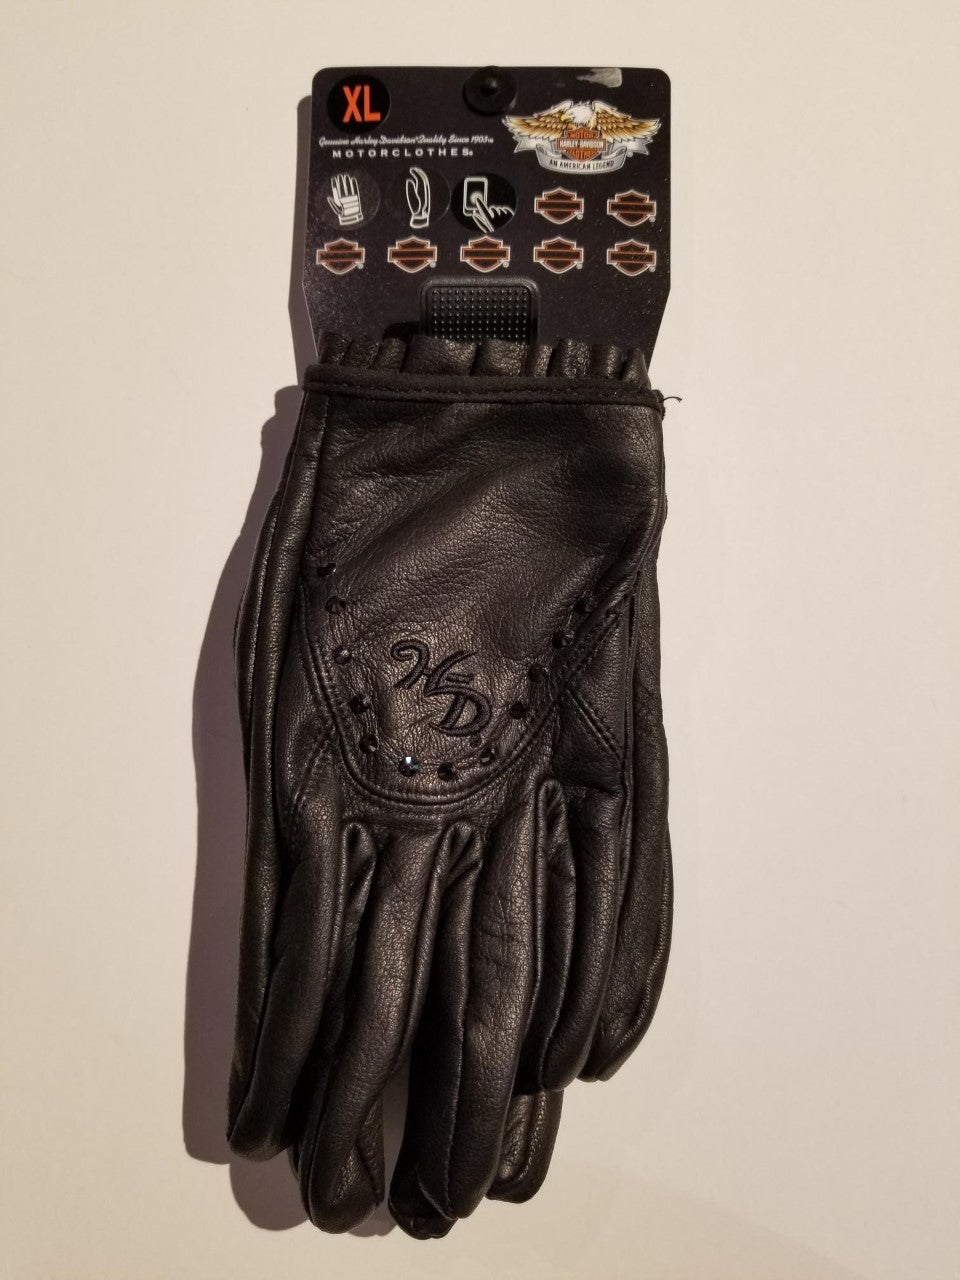 Harley-Davidson glove-F/F, lea, radiant feb del/women's black